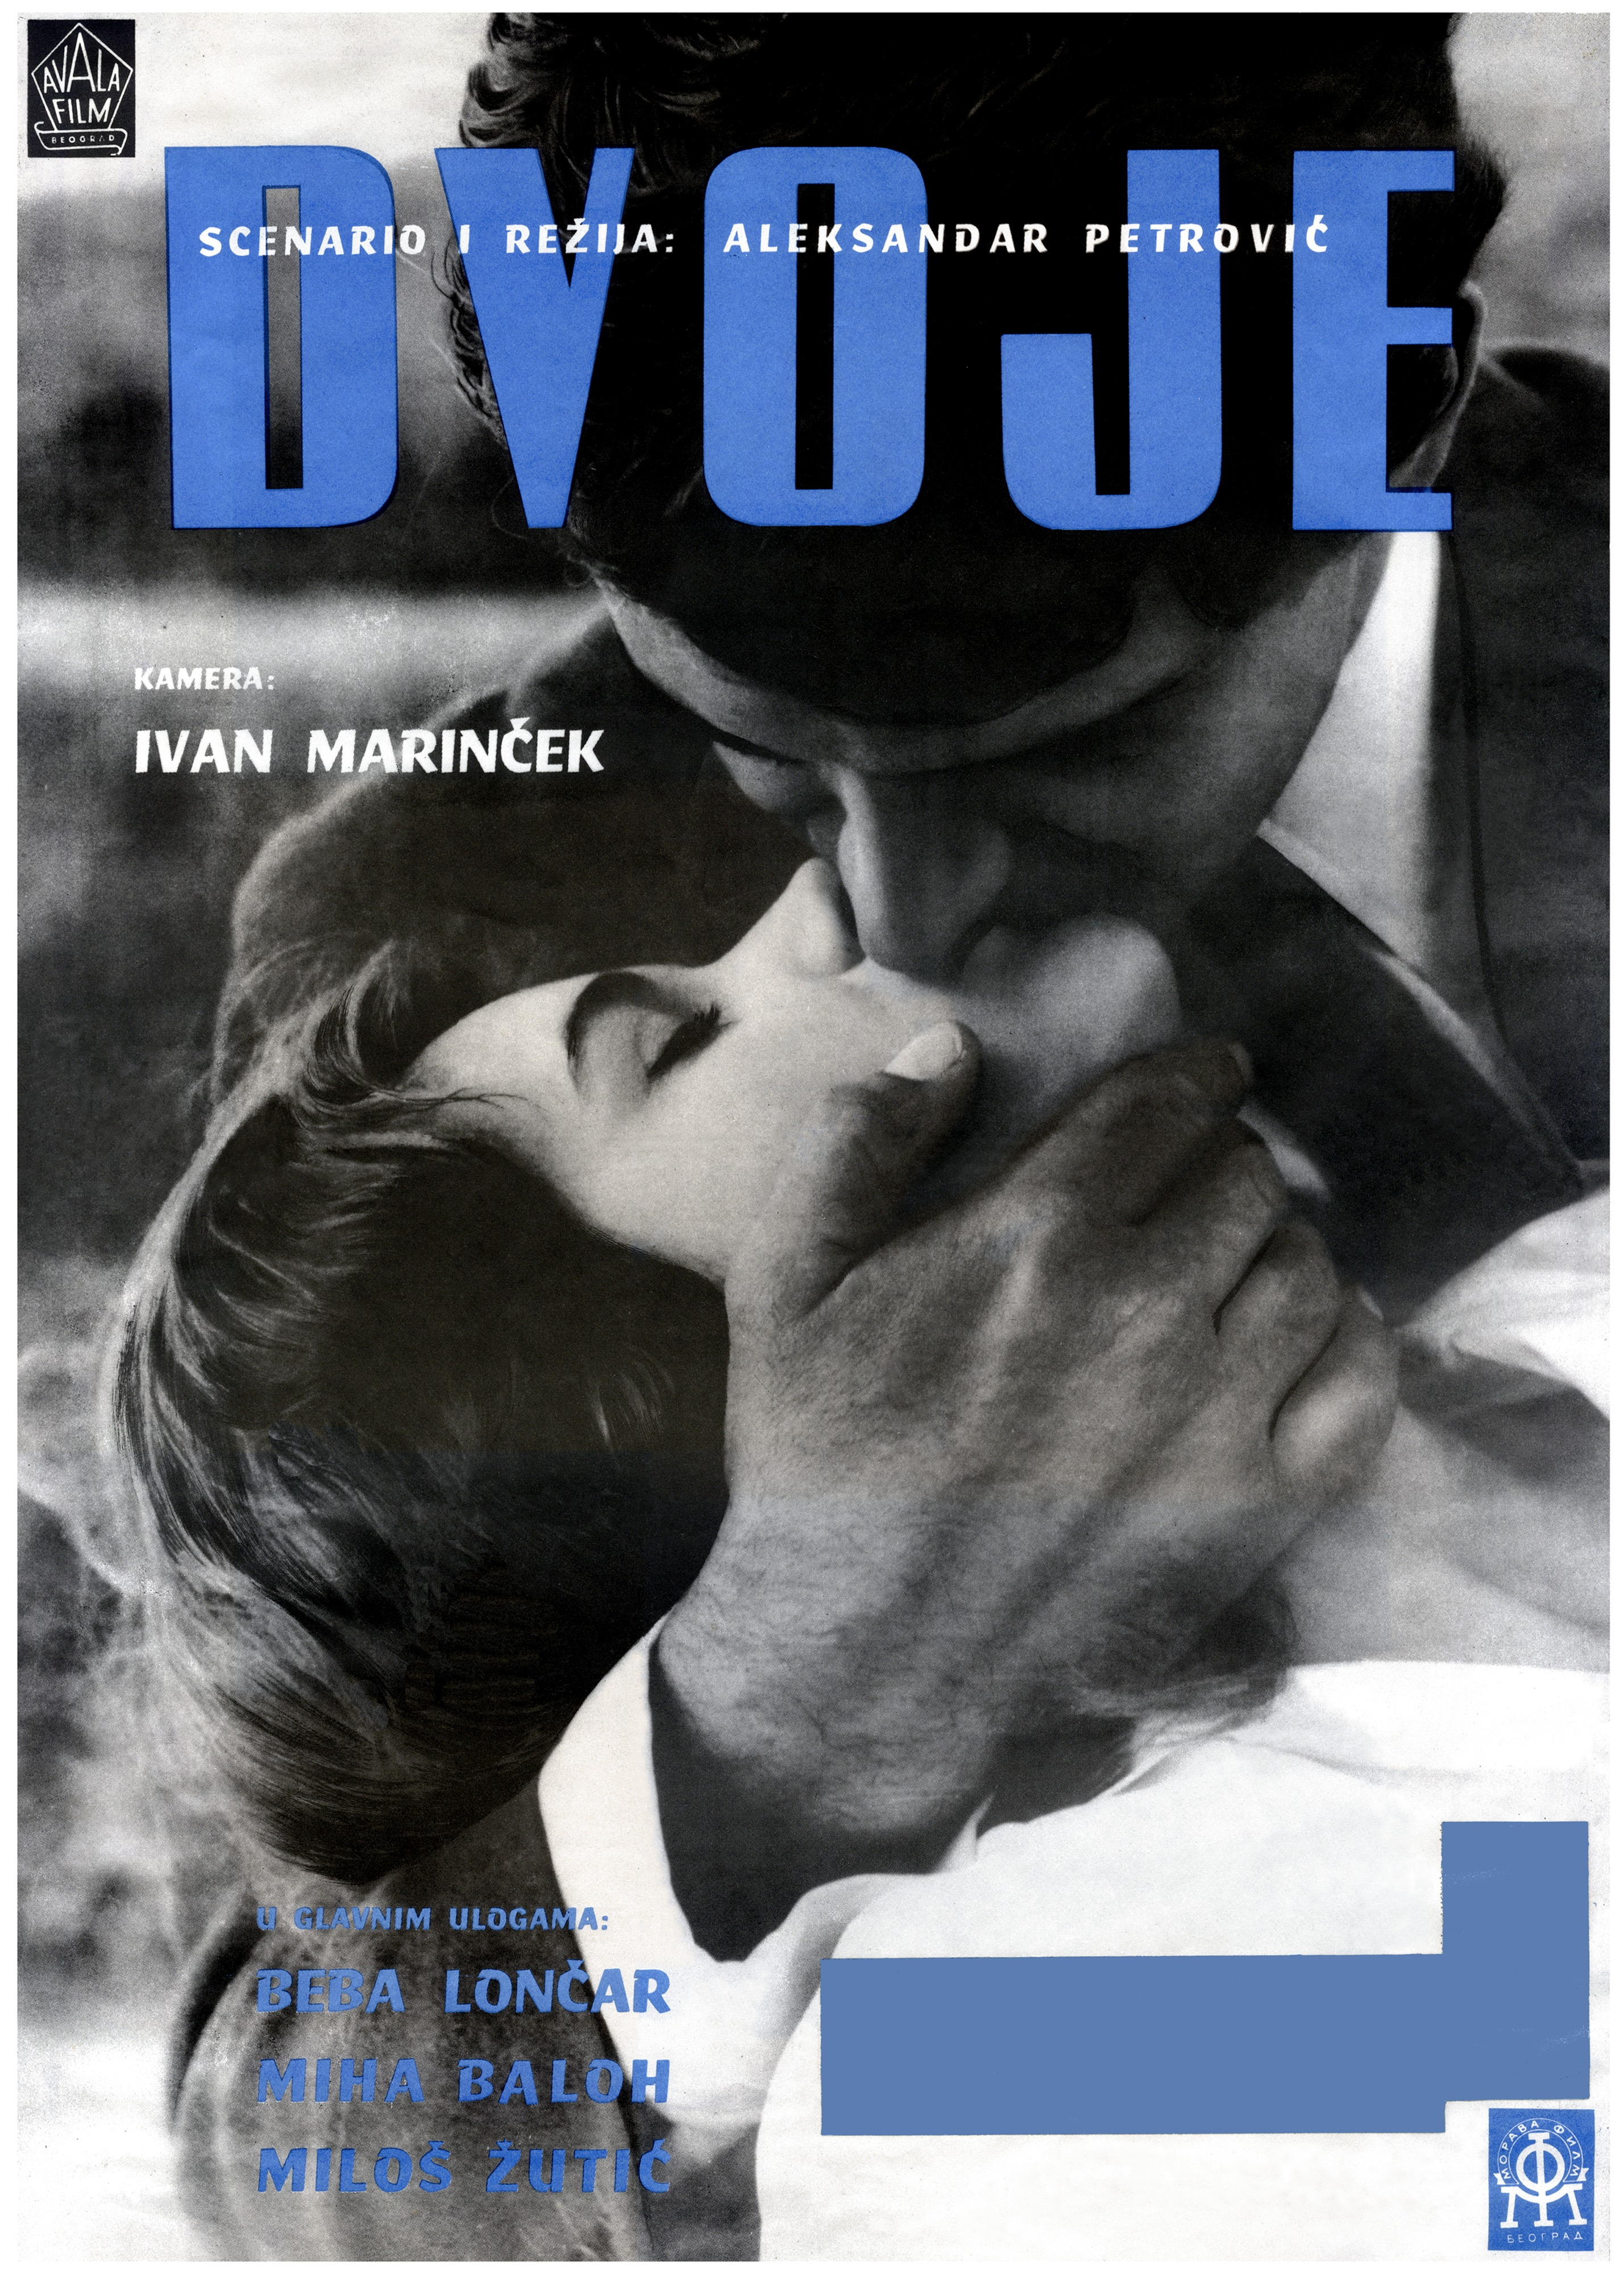 Poster announcing the feature film 'Dvoje', © Jugoslovenska kinoteka, Belgrade